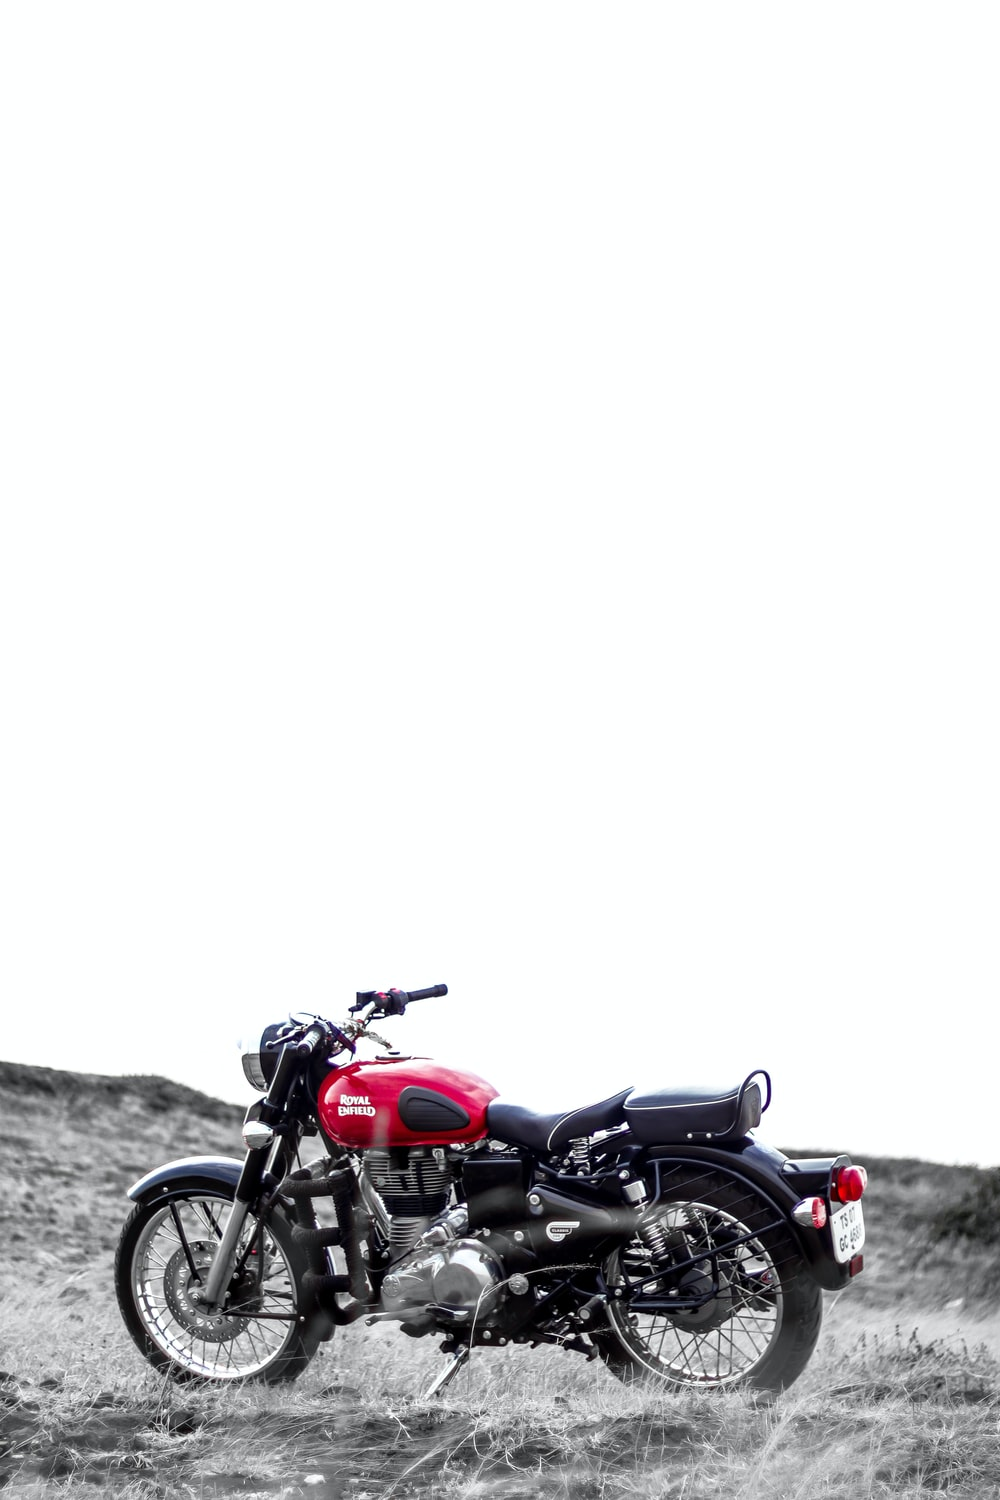 black and red standard motorcycle